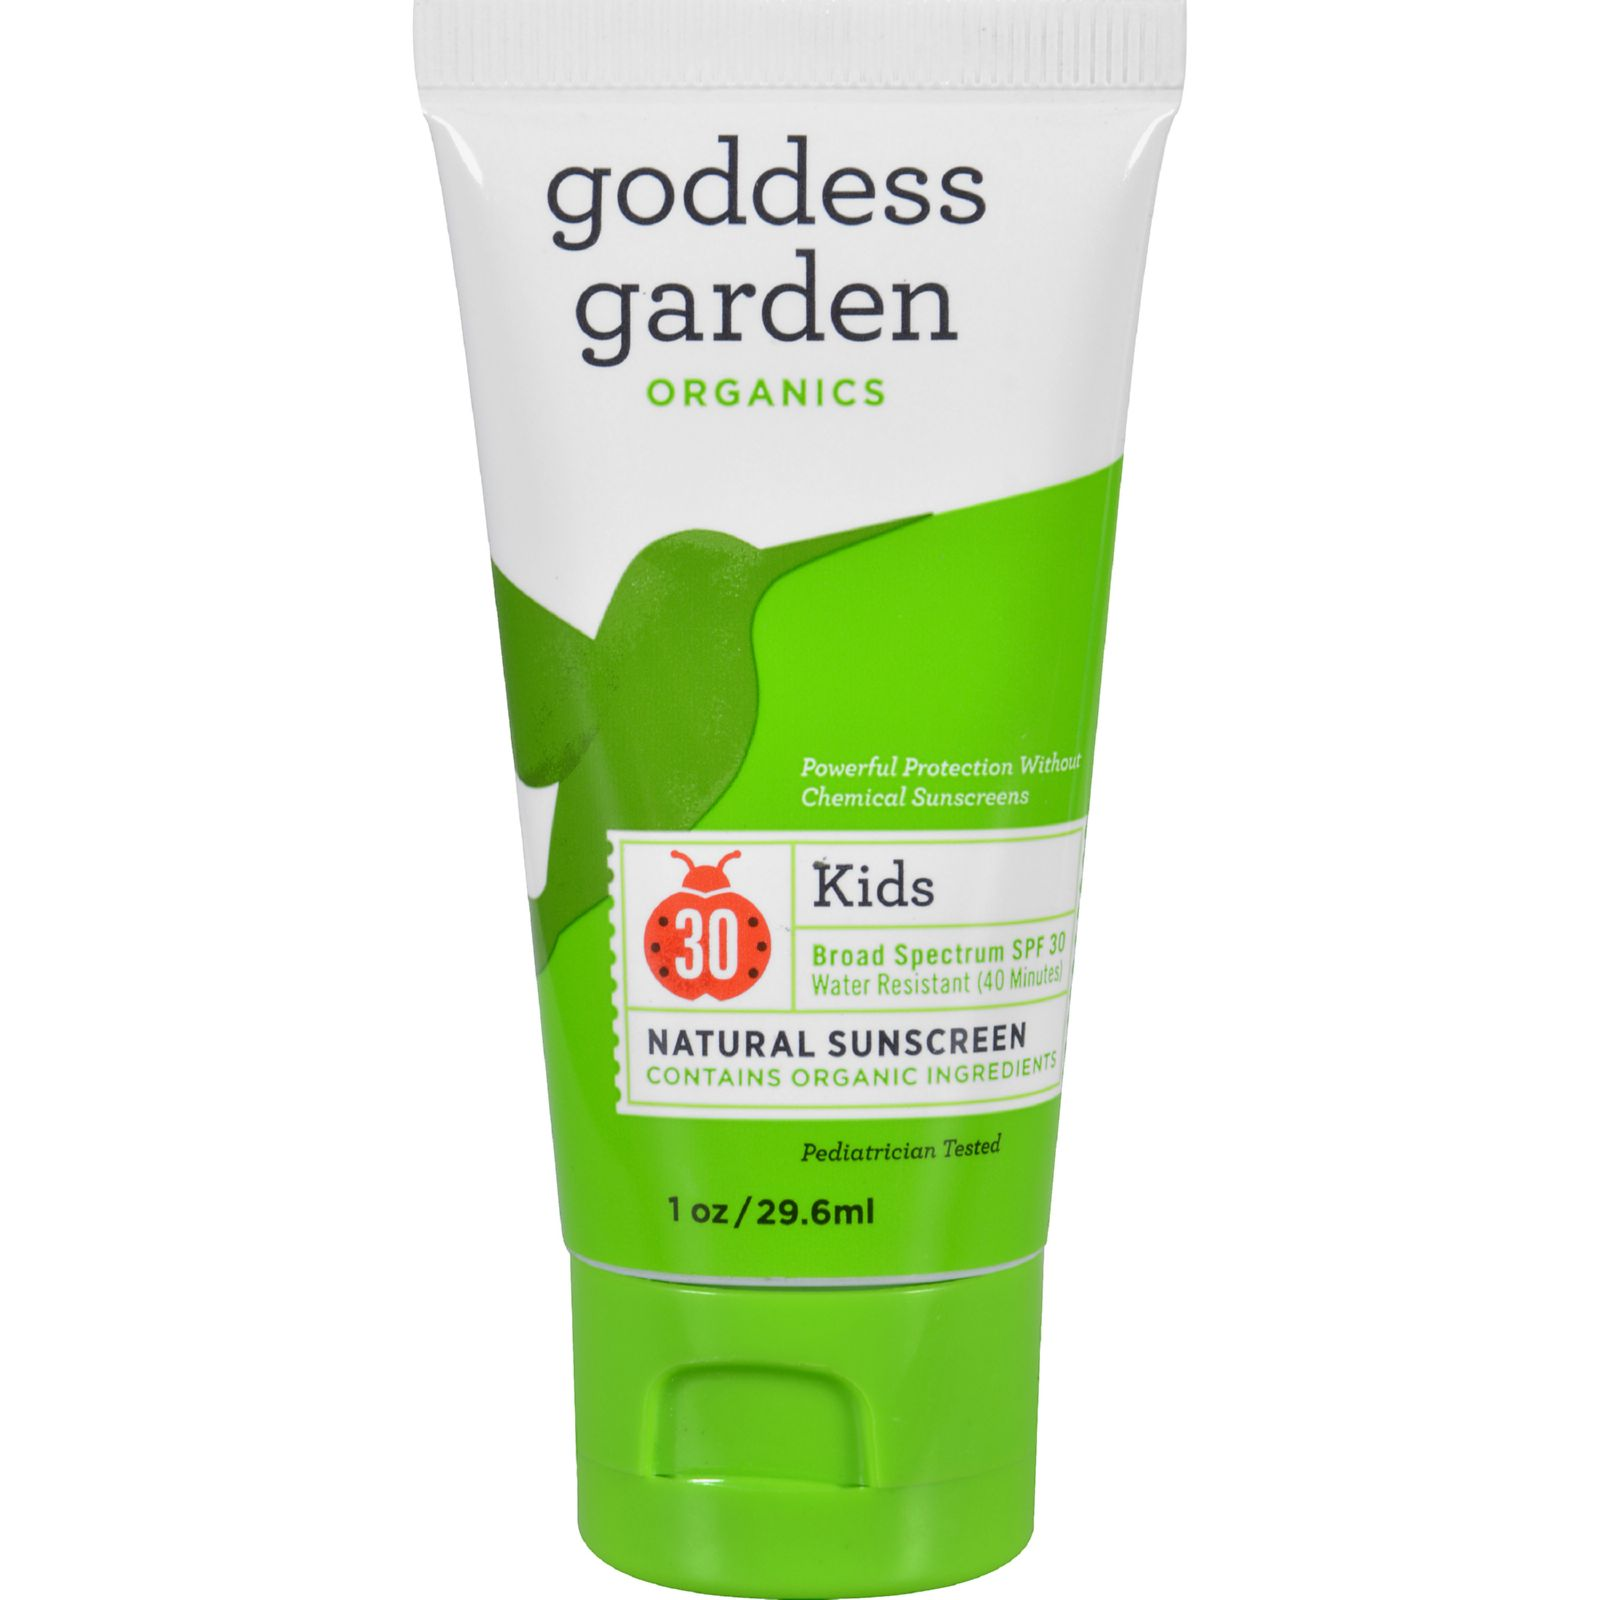 Goddess Garden Sunscreen - Natural - Kids - Spf 30 - 1 Oz